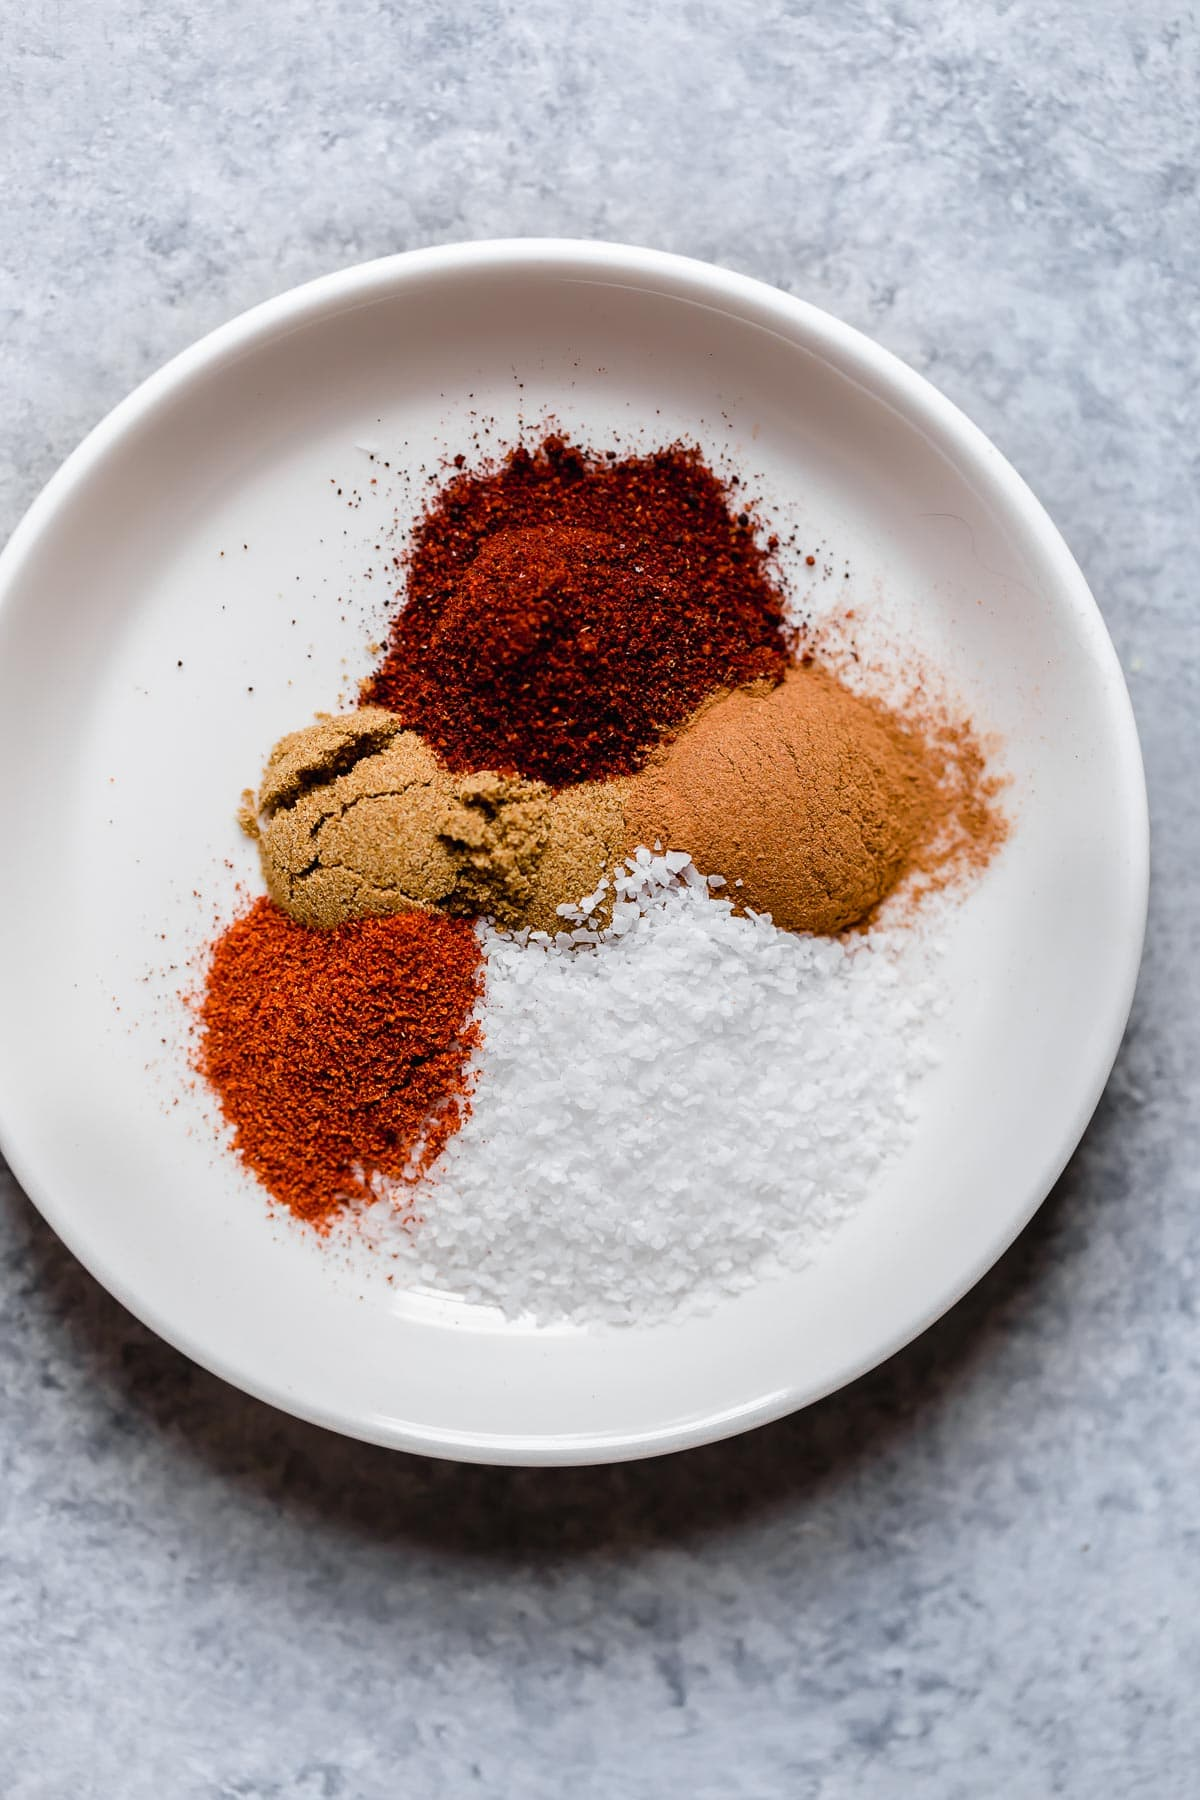 Pork tenderloin rub spices in sections on a white plate.